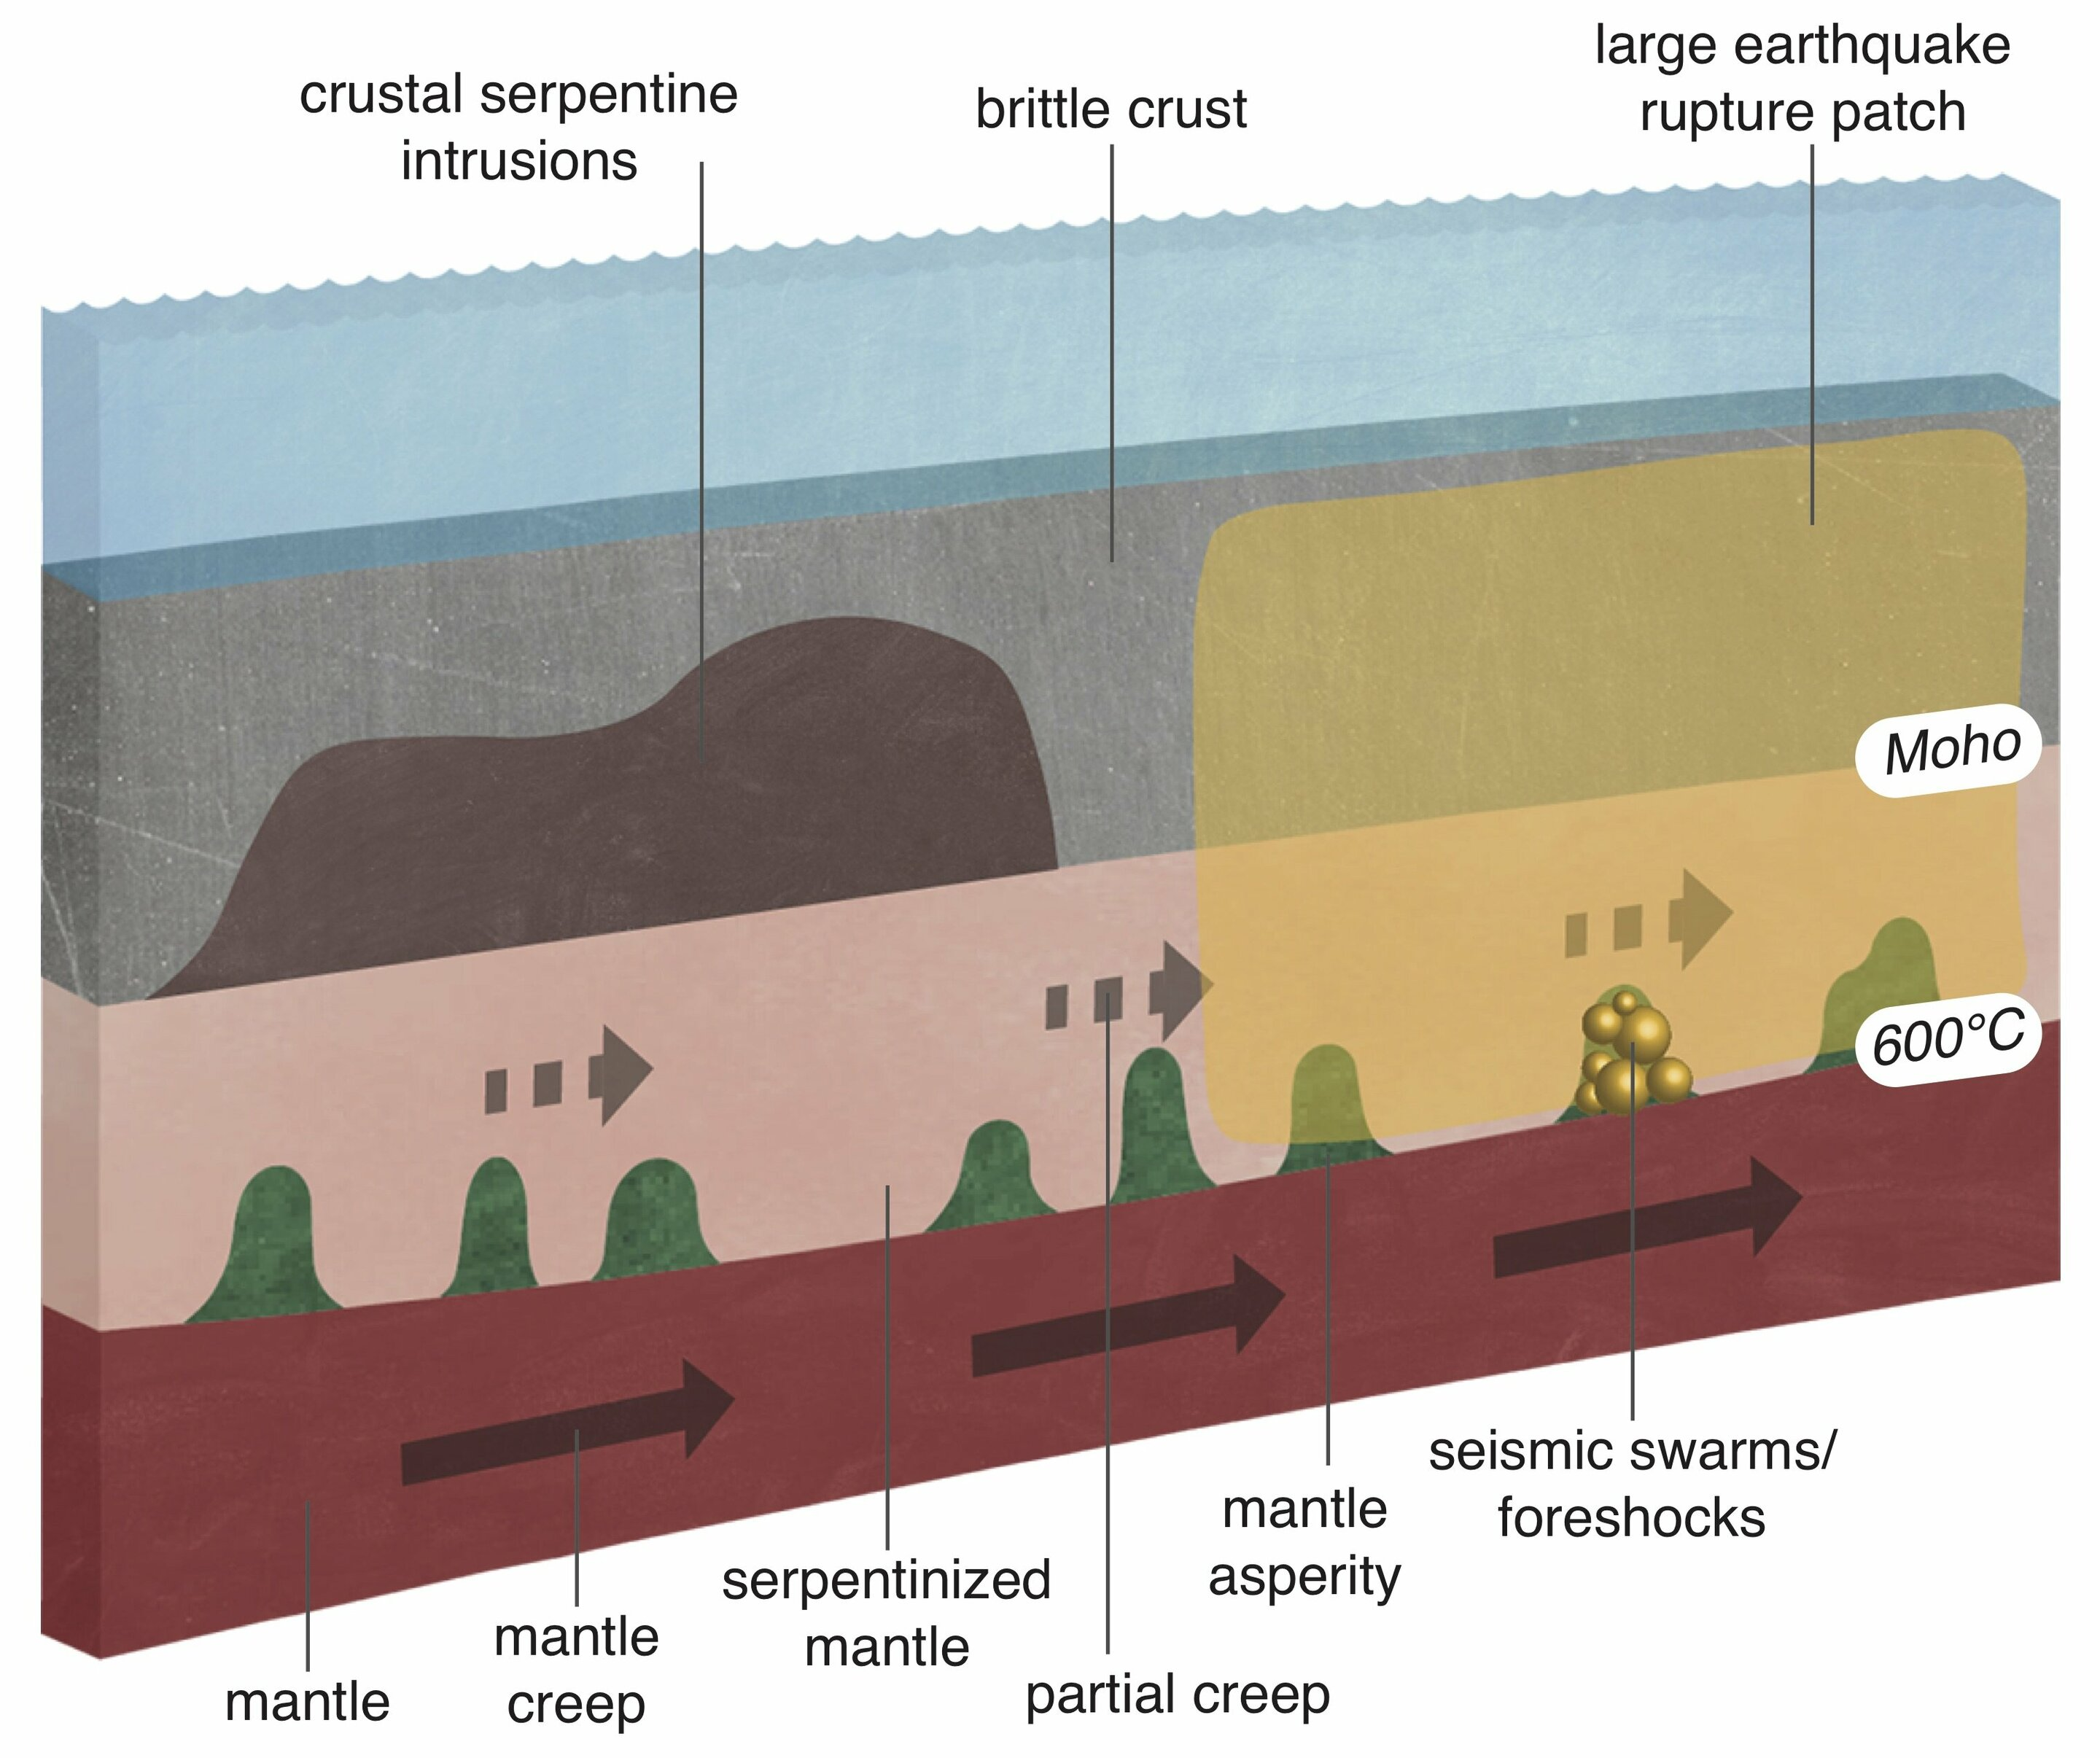 Silent slip' along fault line serves as prelude to big